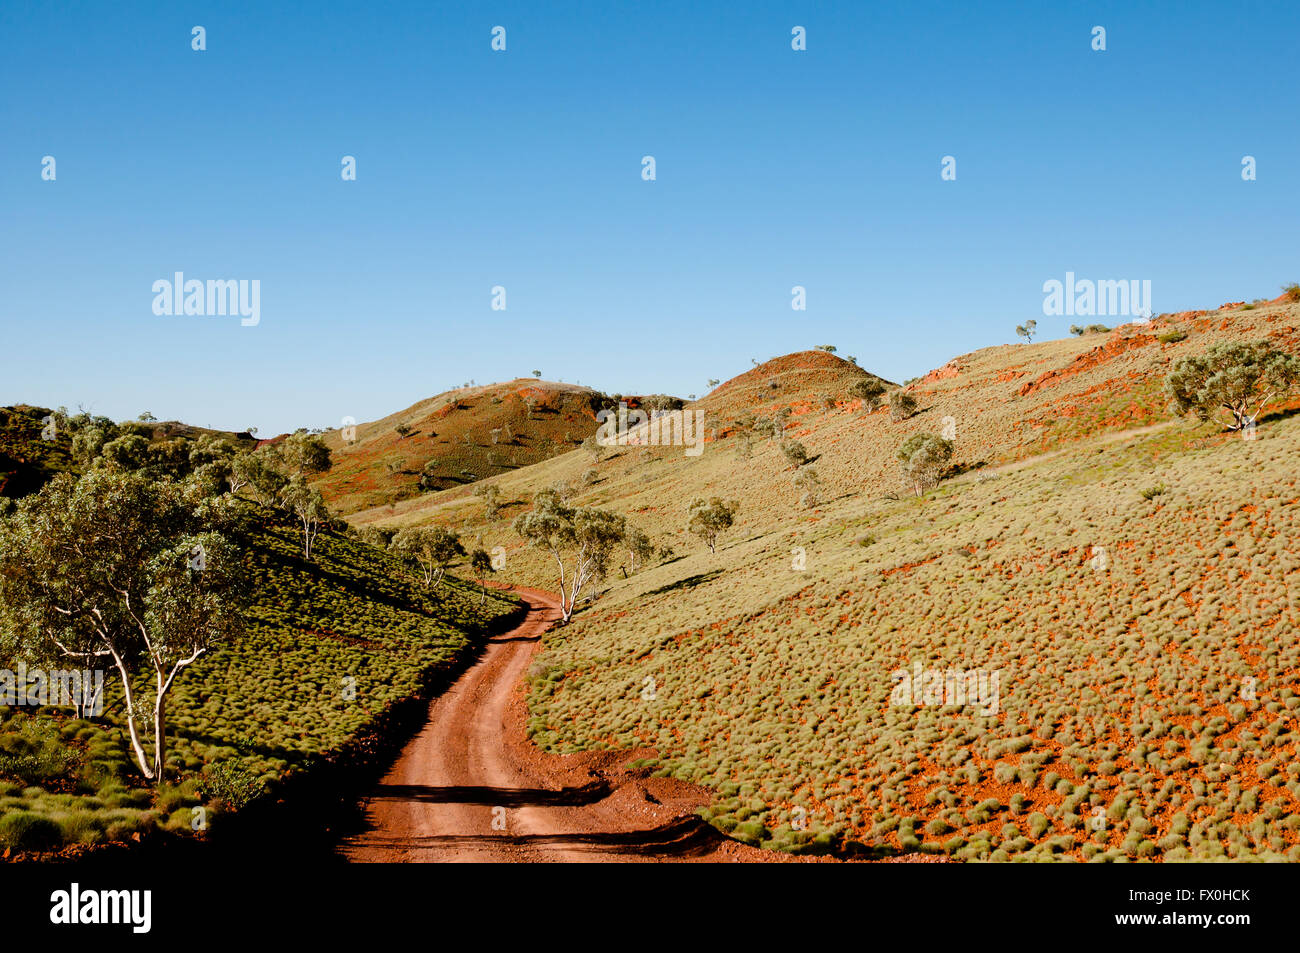 Offroad Track - Outback Australia - Stock Image